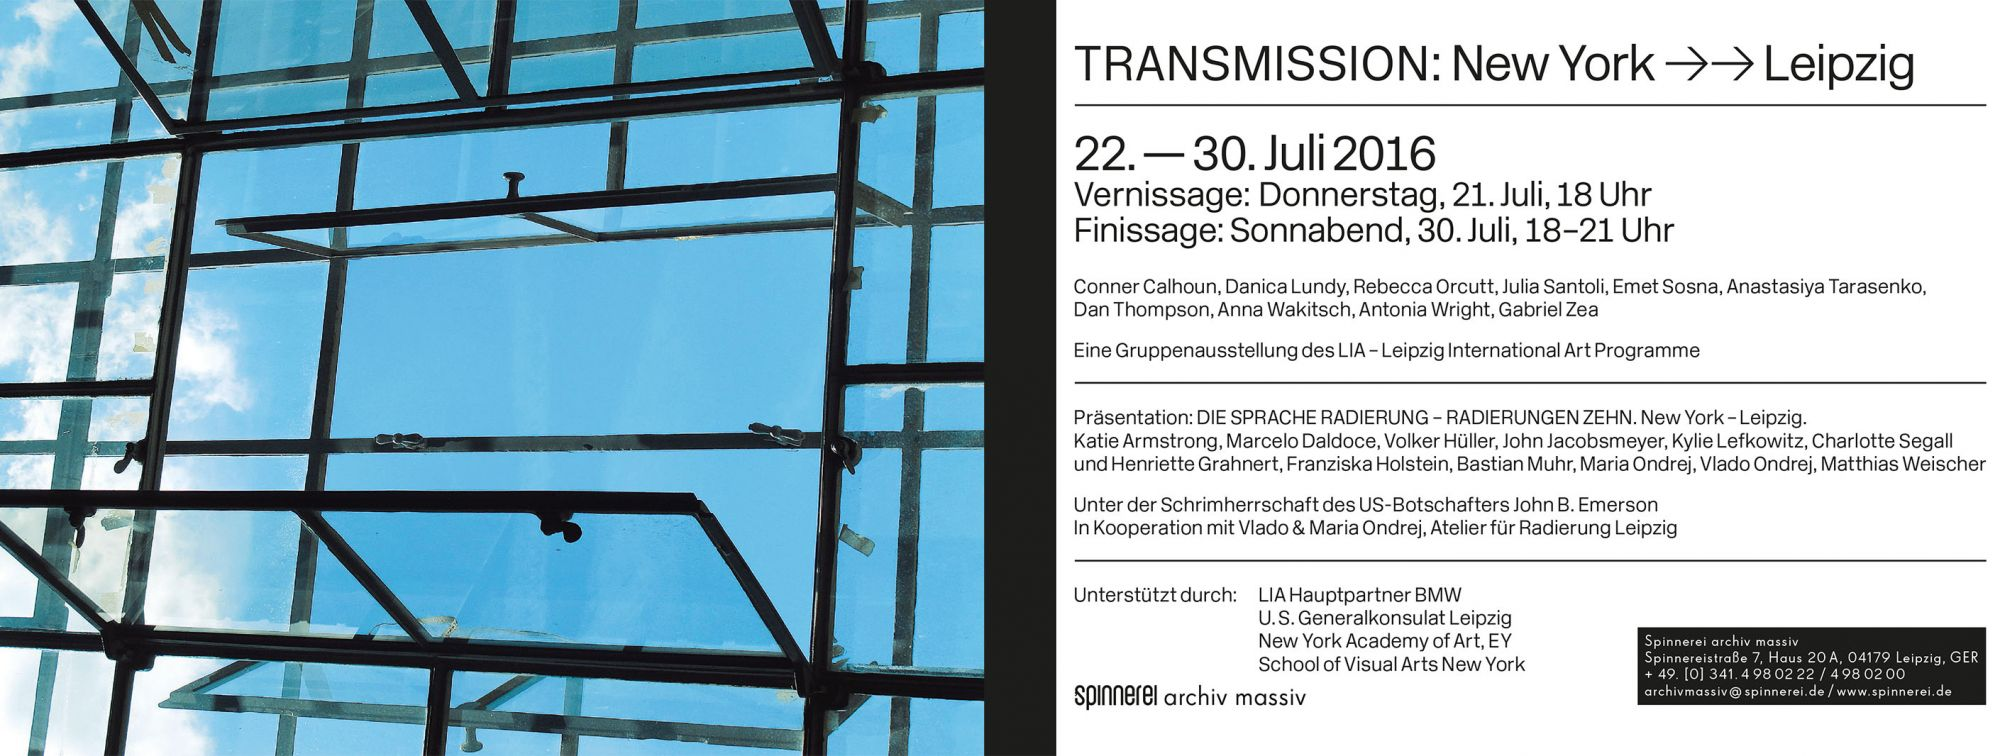 tl_files/spinnerei/archiv_massiv_neu/Invitation_TRANSMISSION-New York-Leipzig_web.jpg